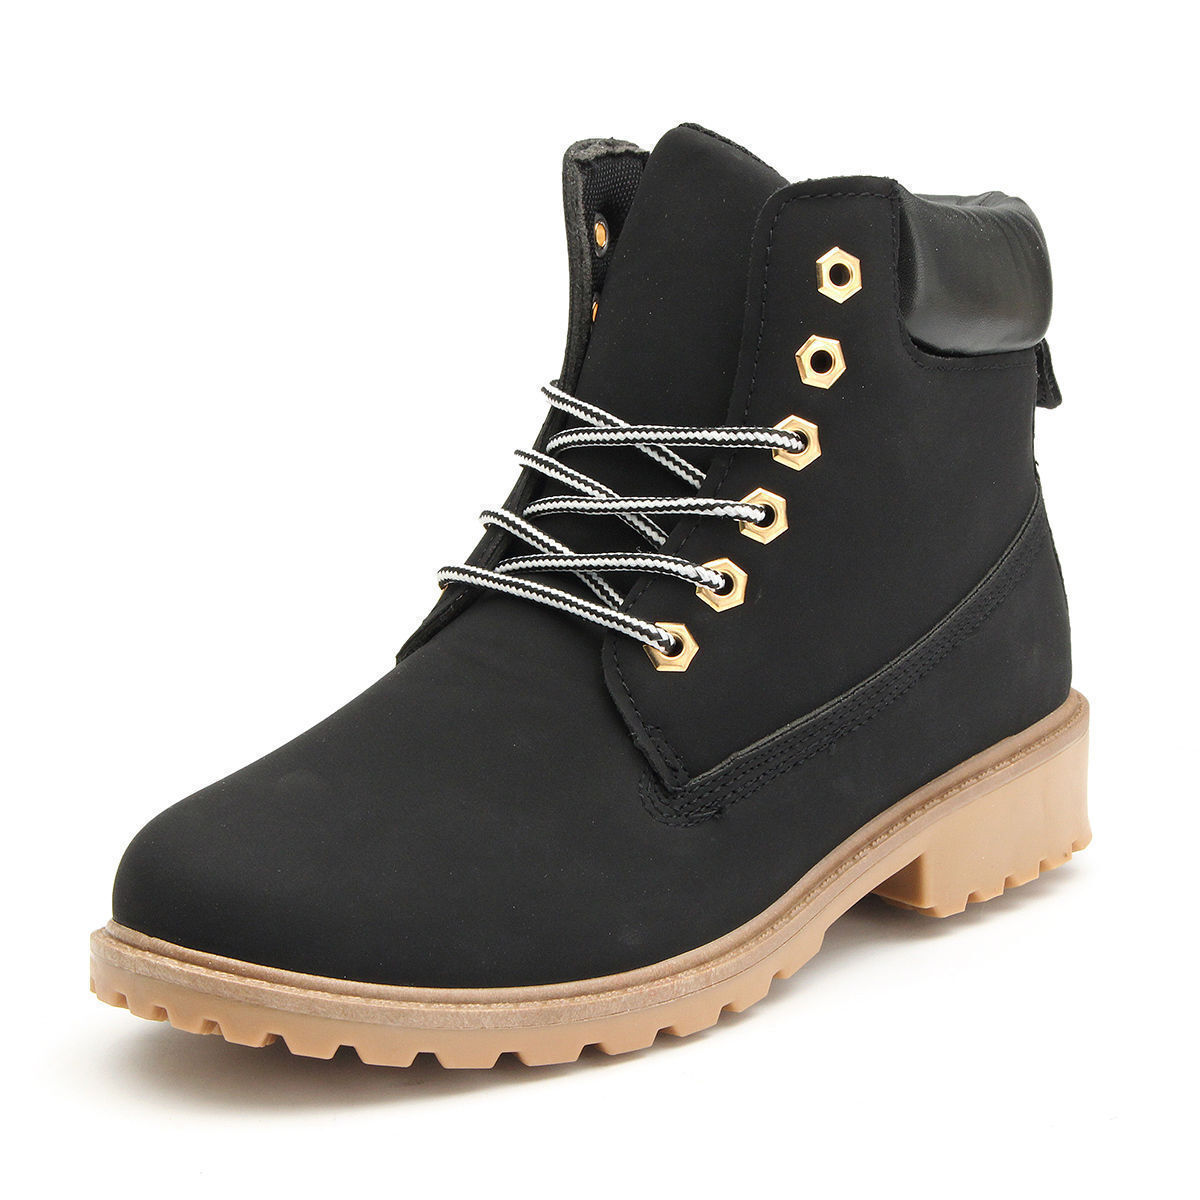 2018 WORK Boots Women's Winter Leather Boot Lace up ...